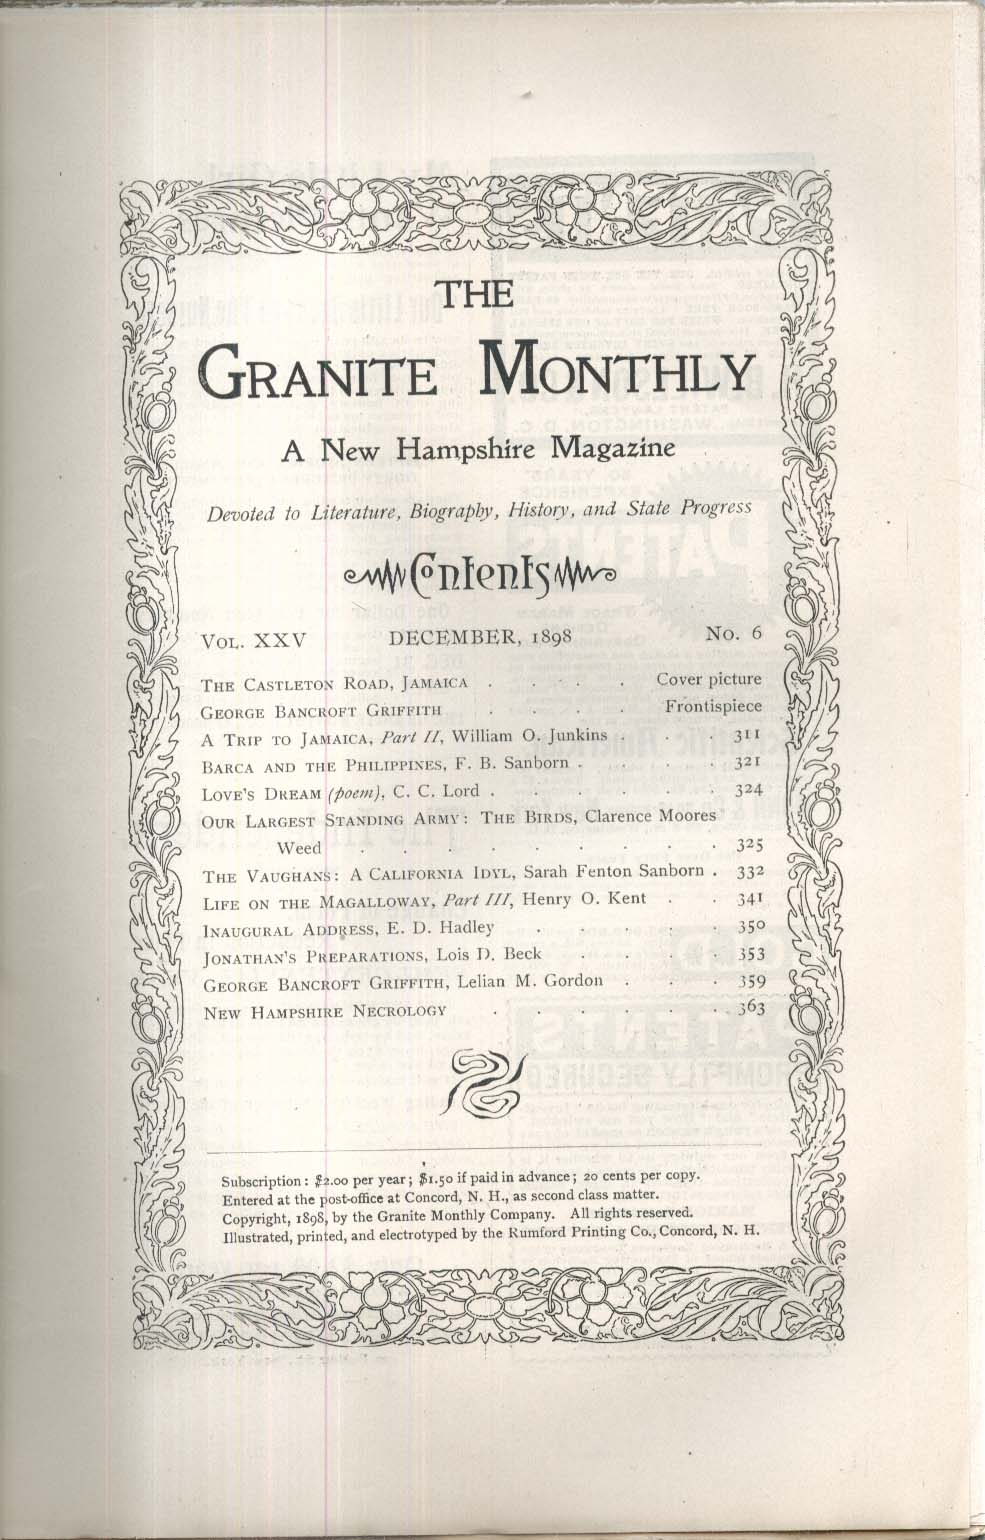 GRANITE MONTHLY New Hampshire George Bancroft Griffith + 12 1898